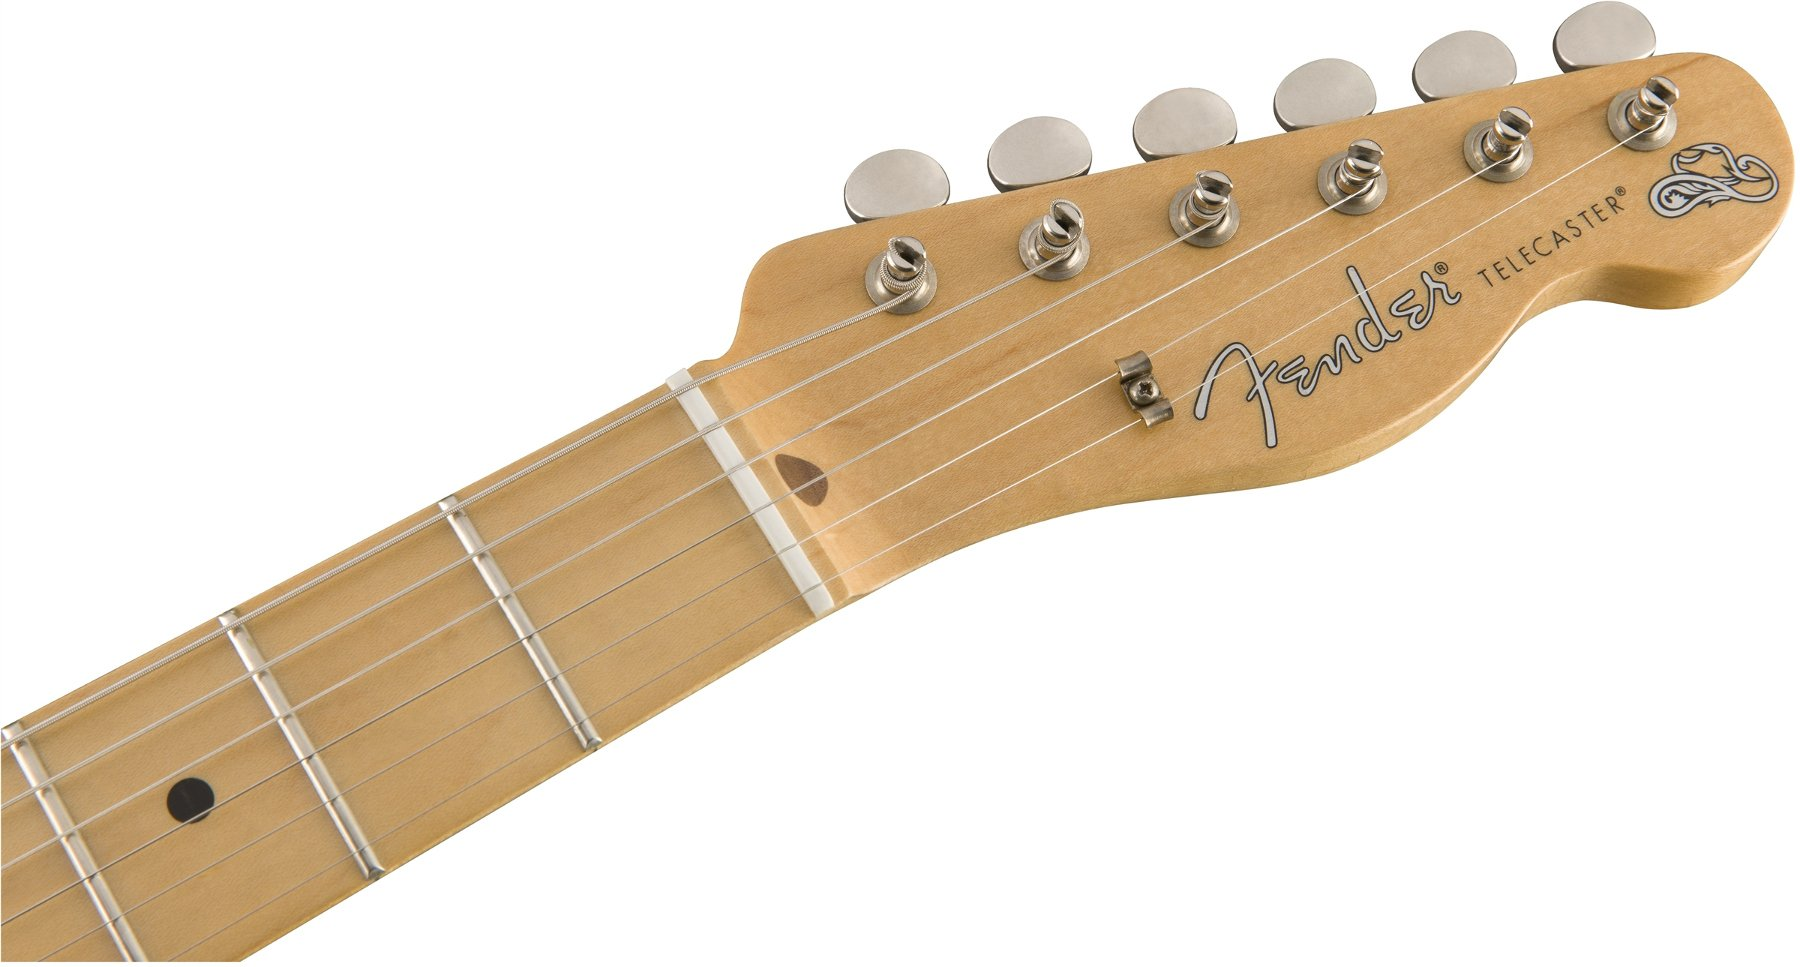 Road Worn Telecaster, Silver Sparkle Finish